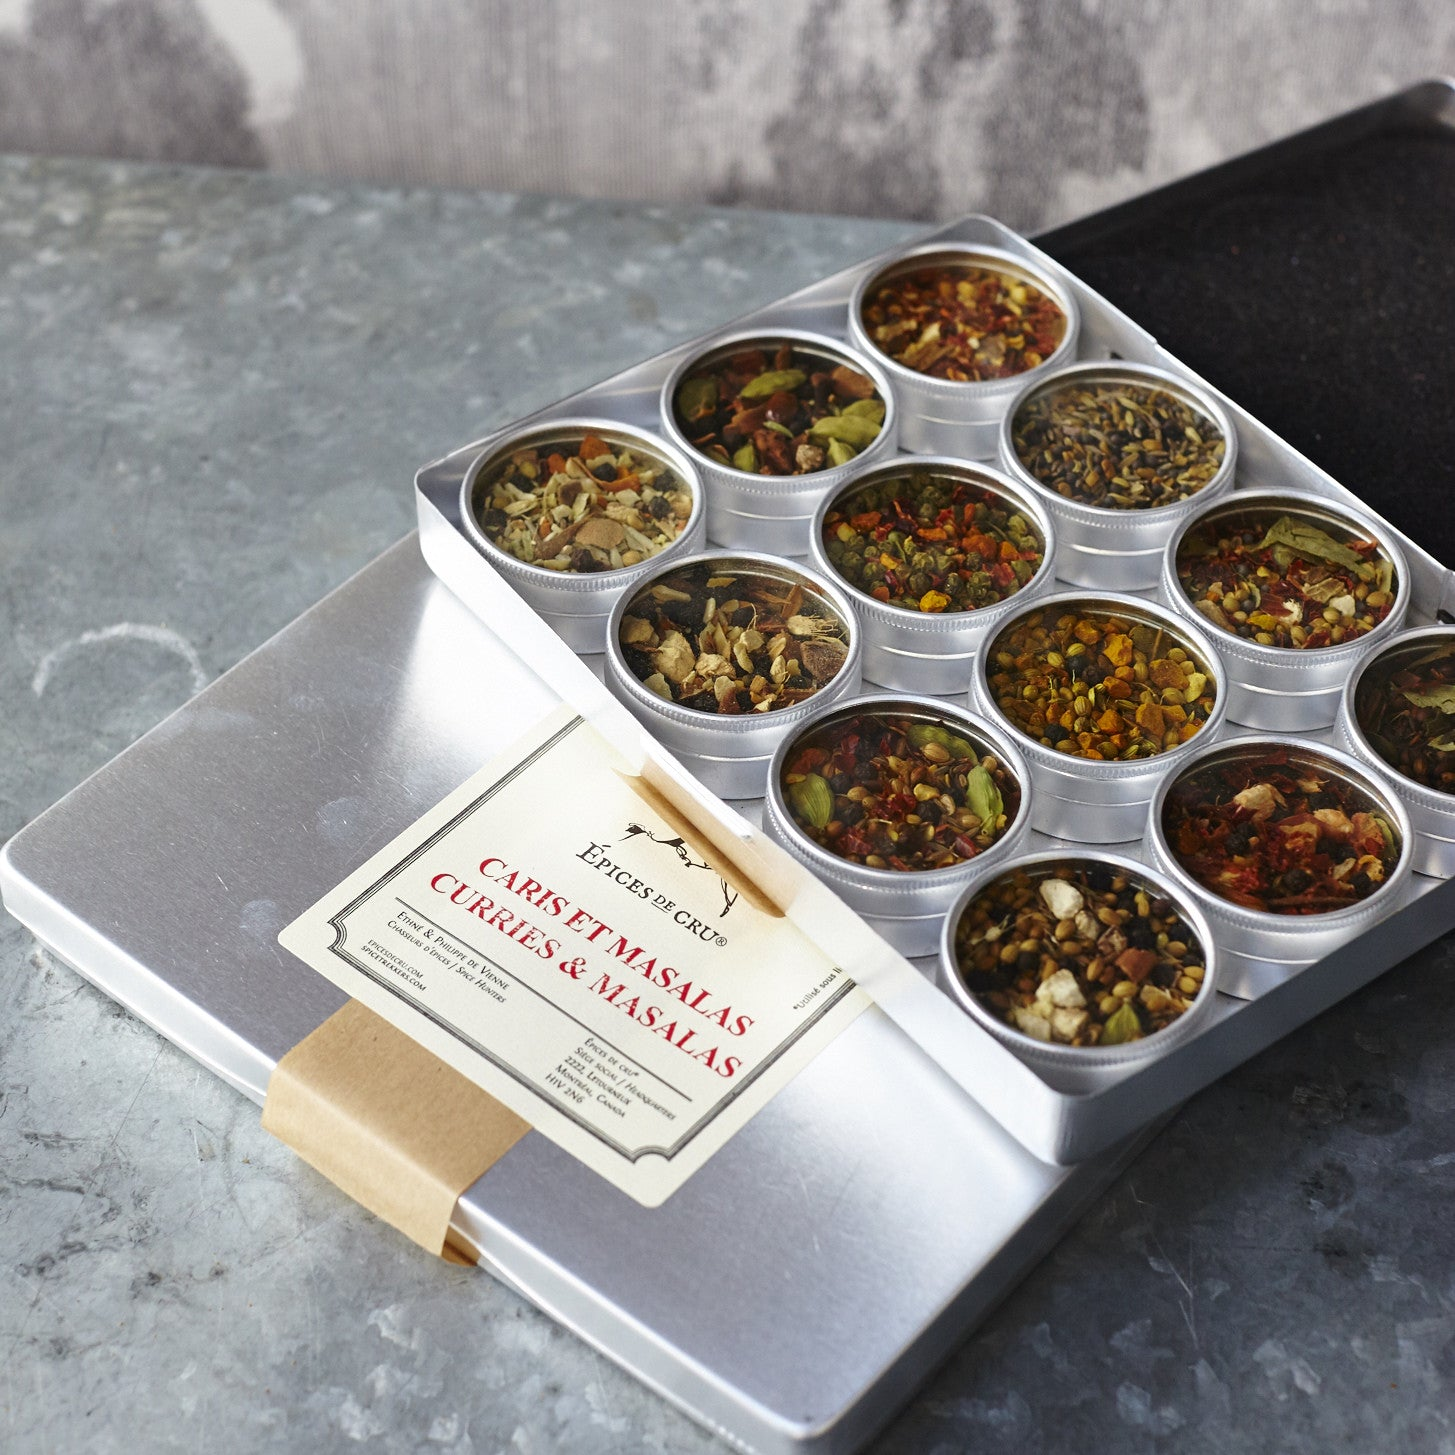 Épices de Cru World Curries & Masalas Spice Kit - Vinegar Shed